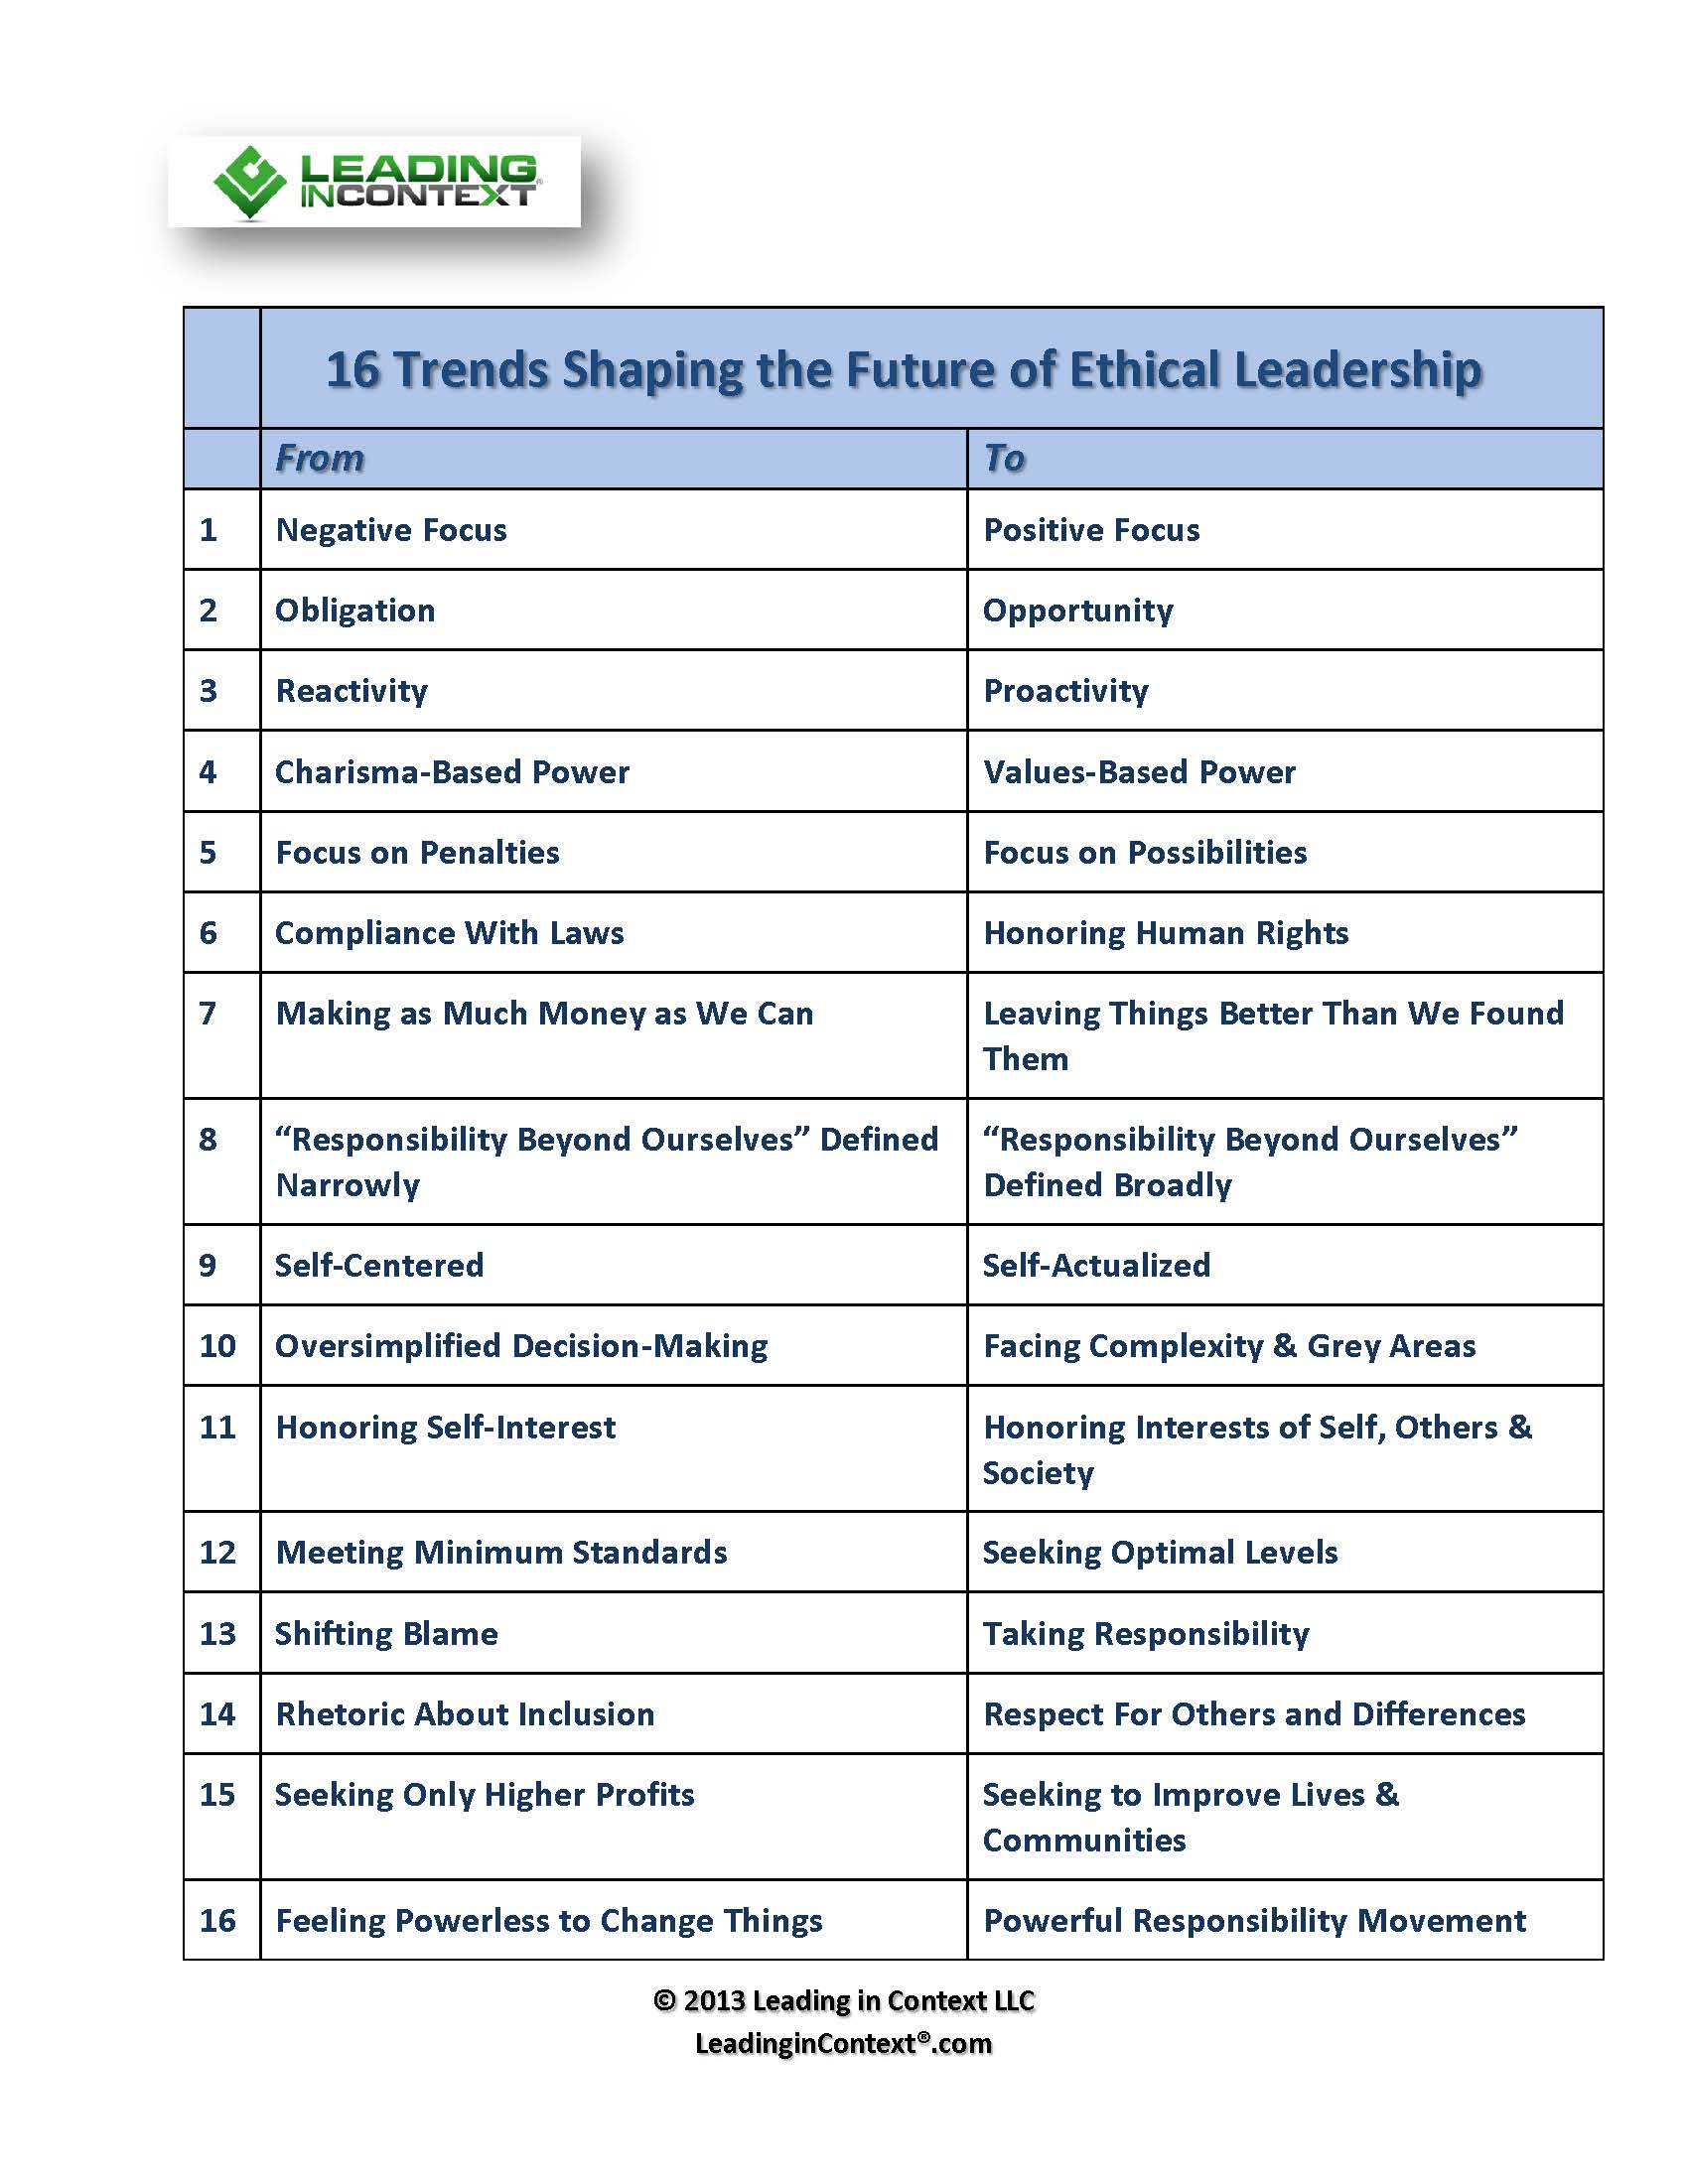 16 Trends Shaping The Future Of Ethical Leadership